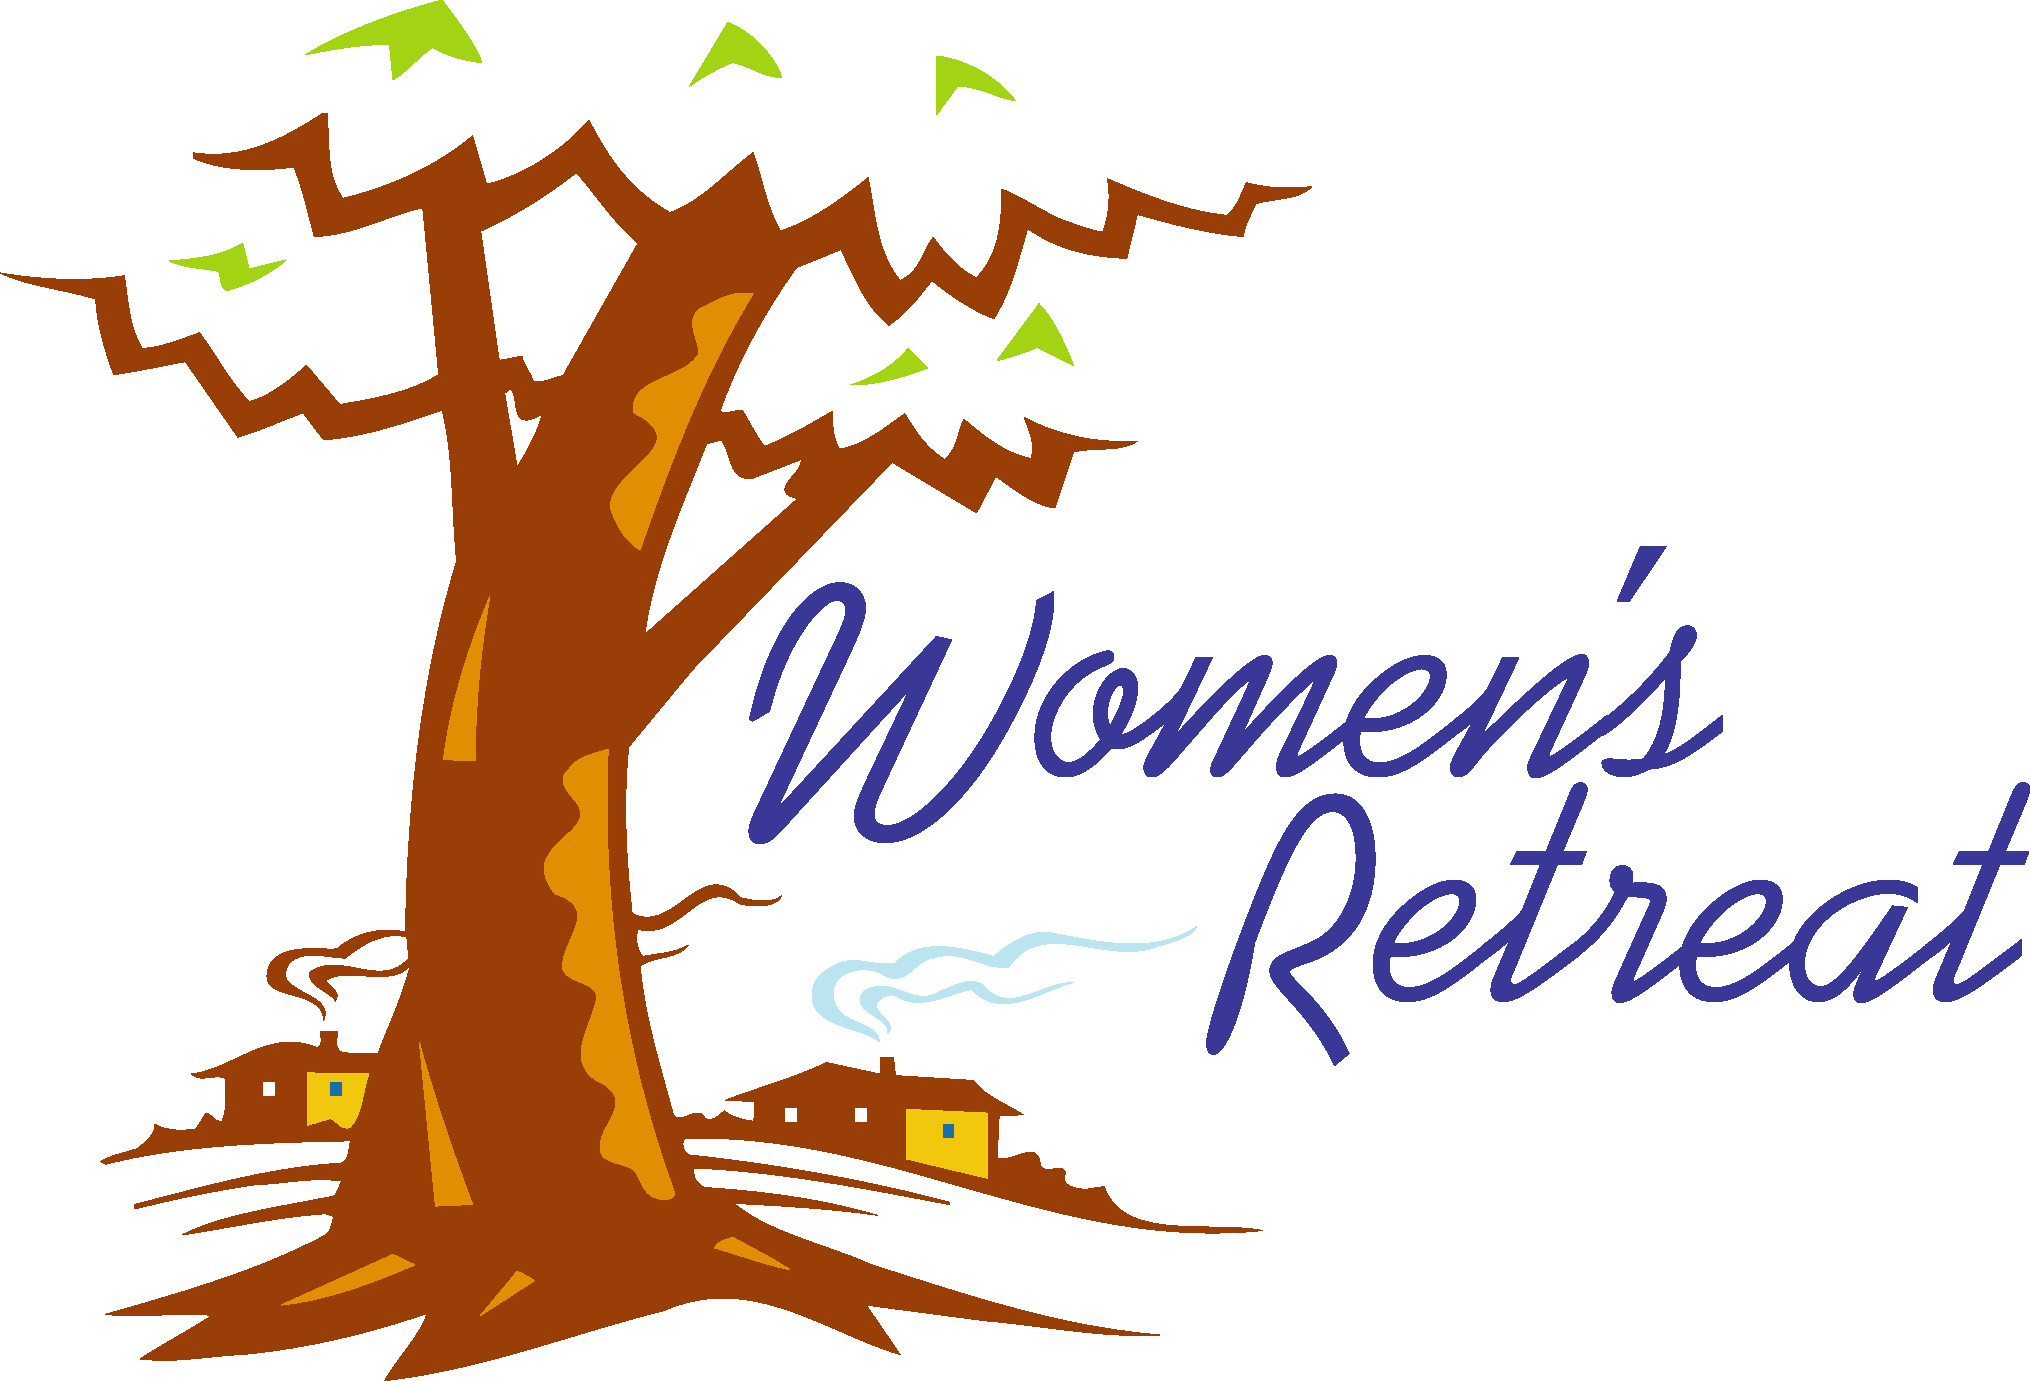 Ladies Retreat Clipart.